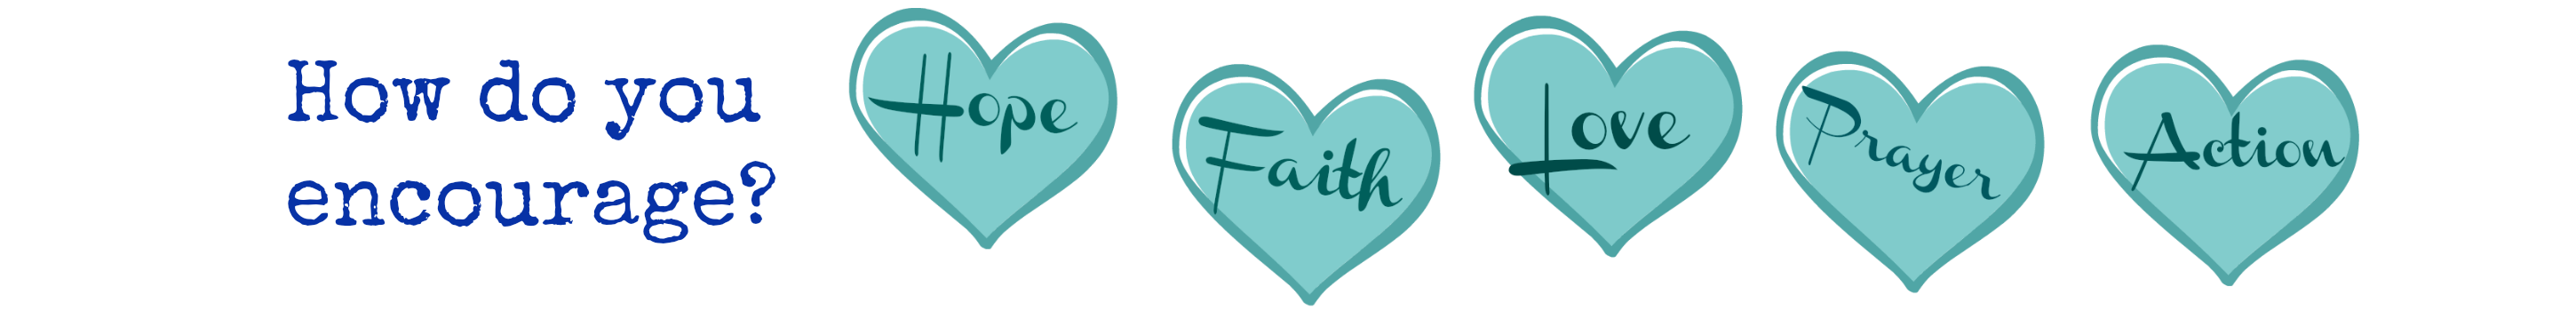 How do you encourage? There are 5 ways: hope, faith, love, prayer, action.